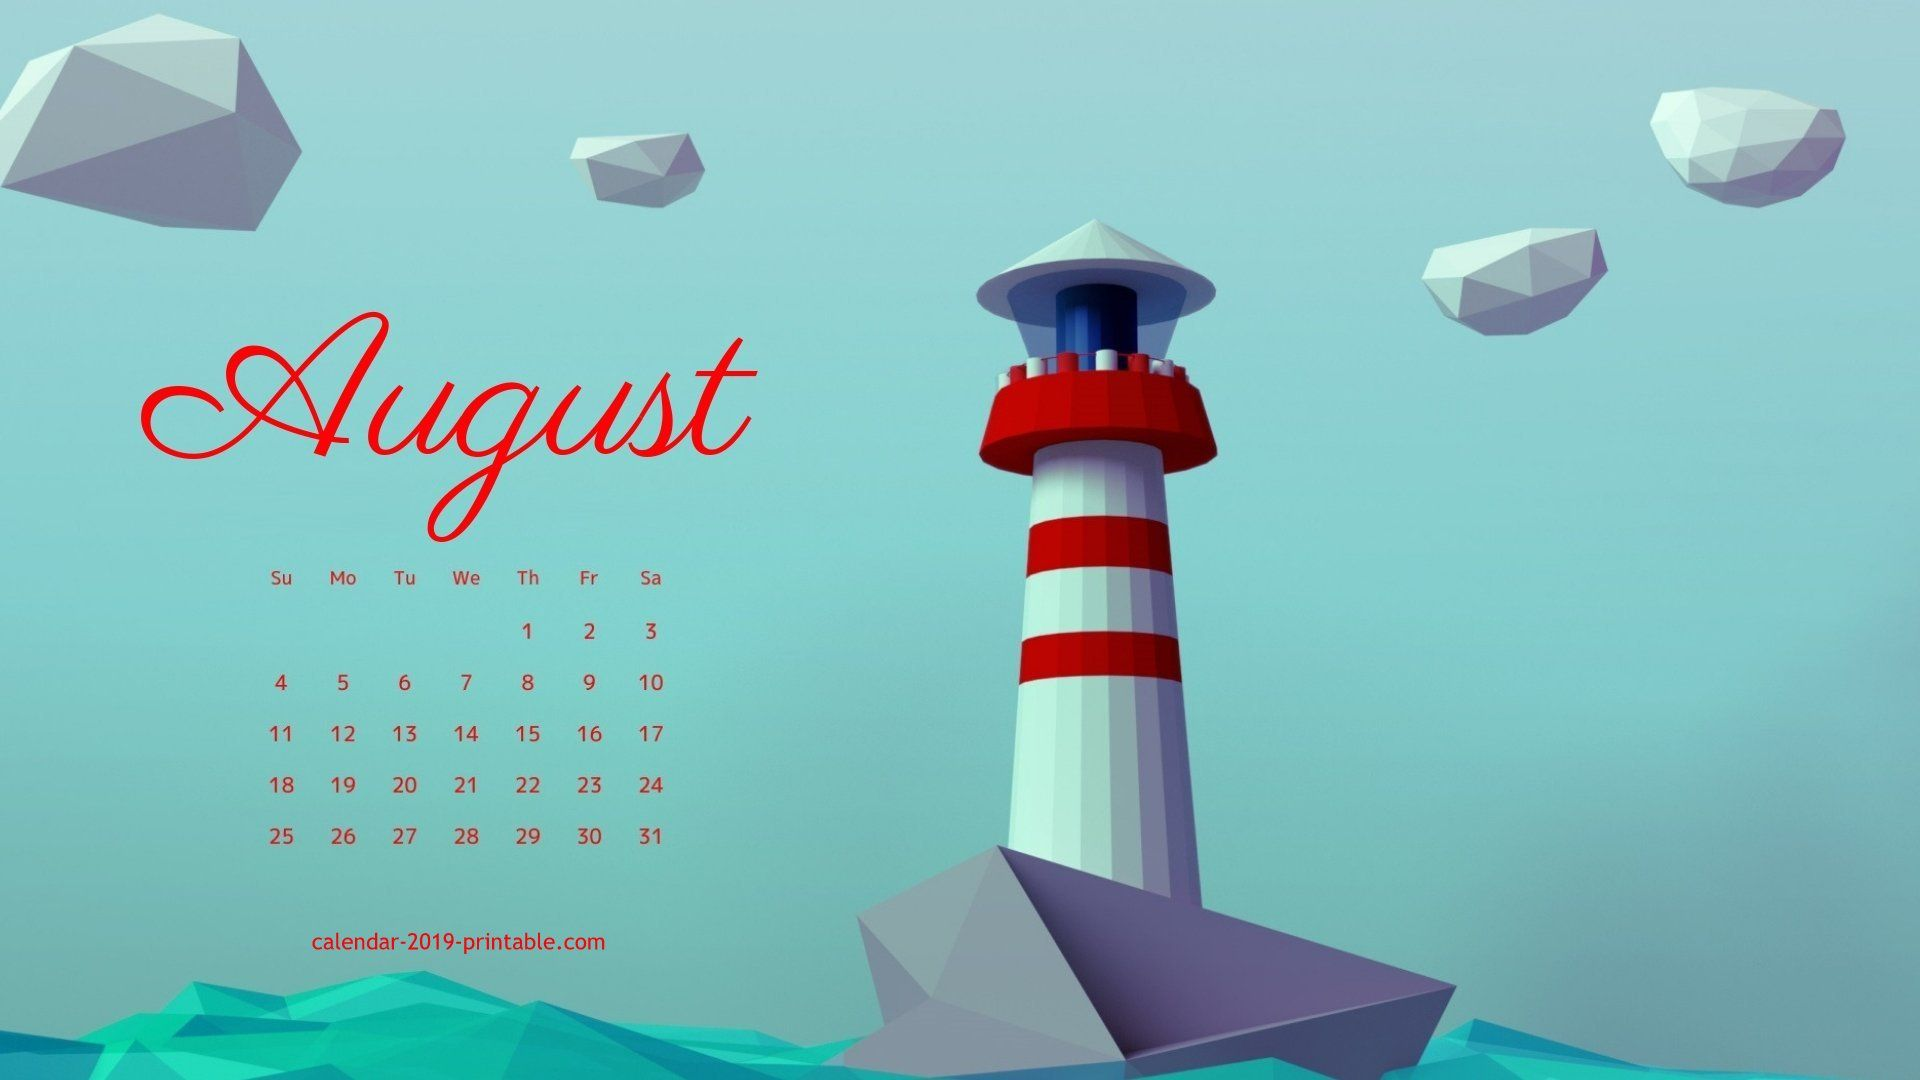 august 2019 calendar hd wallpaper 2019 Calendars in 2019 1920x1080